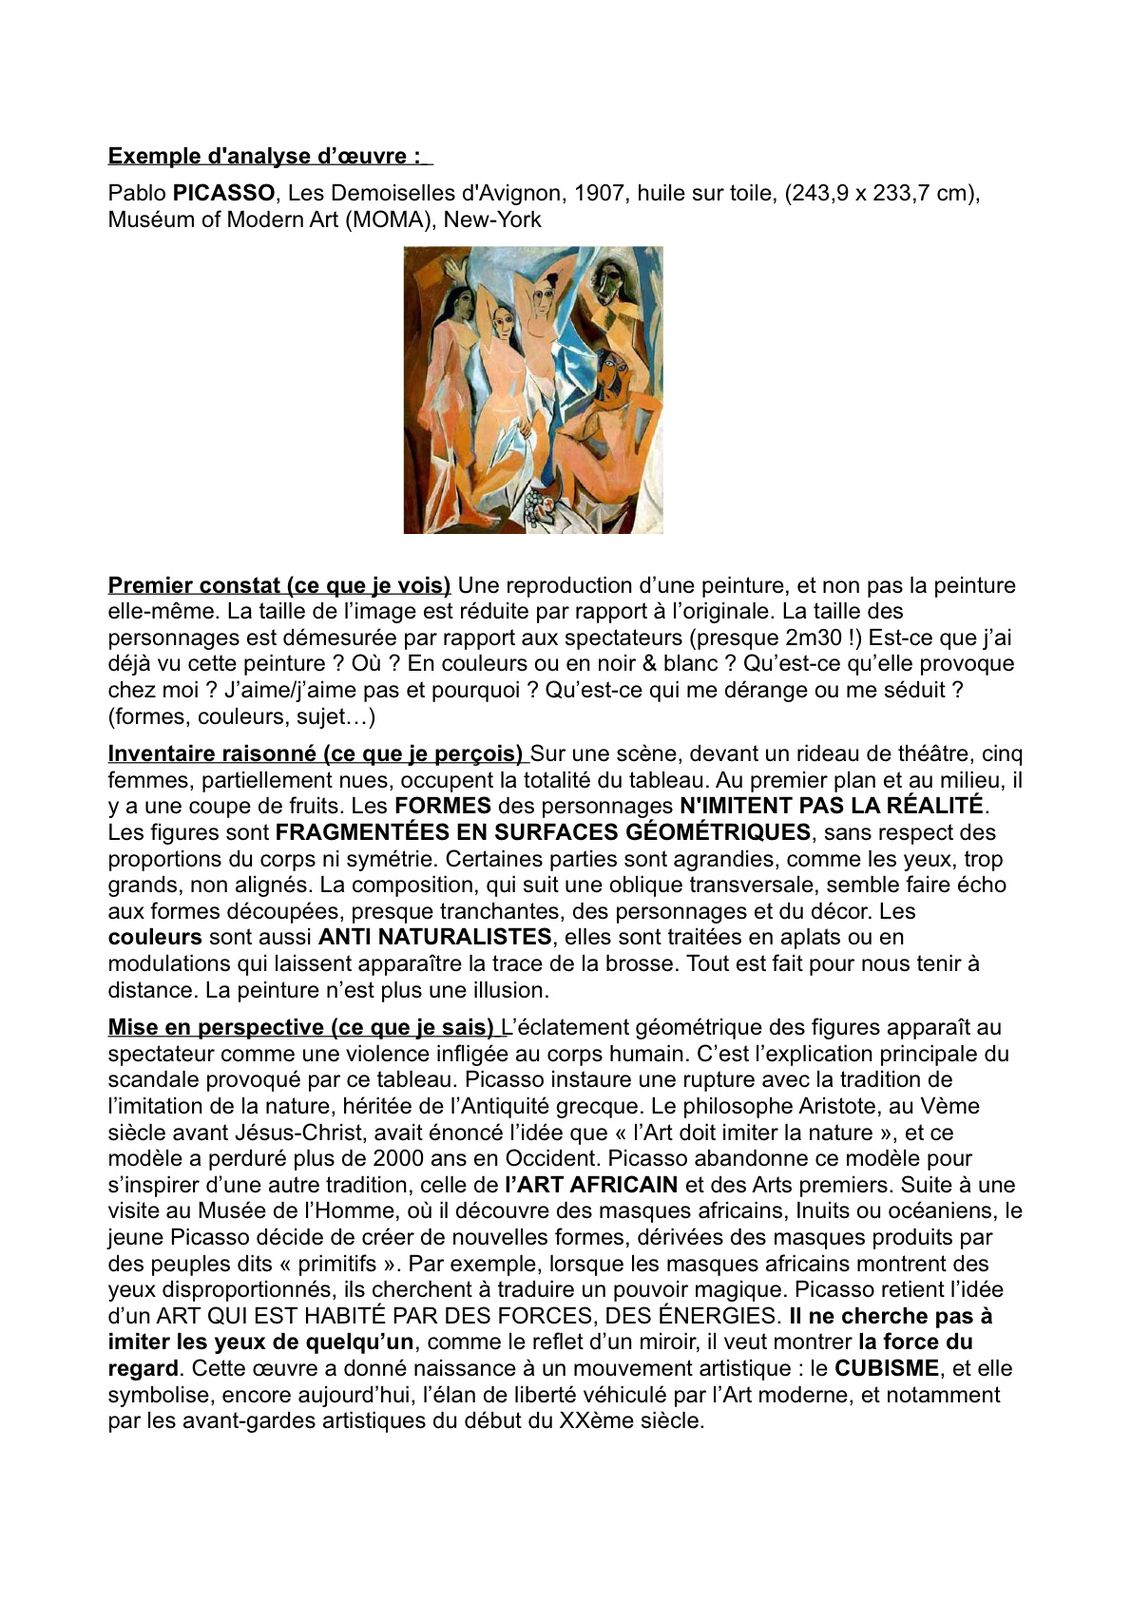 les demoiselles d avignon essay Essays on picasso's demoiselles d' avignon picasso's demoiselles d' avignon search search results pablo picasso in painting are the beginnings of cubism in 1907, picasso painted les demoiselles d'avignon, considered the watershed picture of the twentieth century, and.